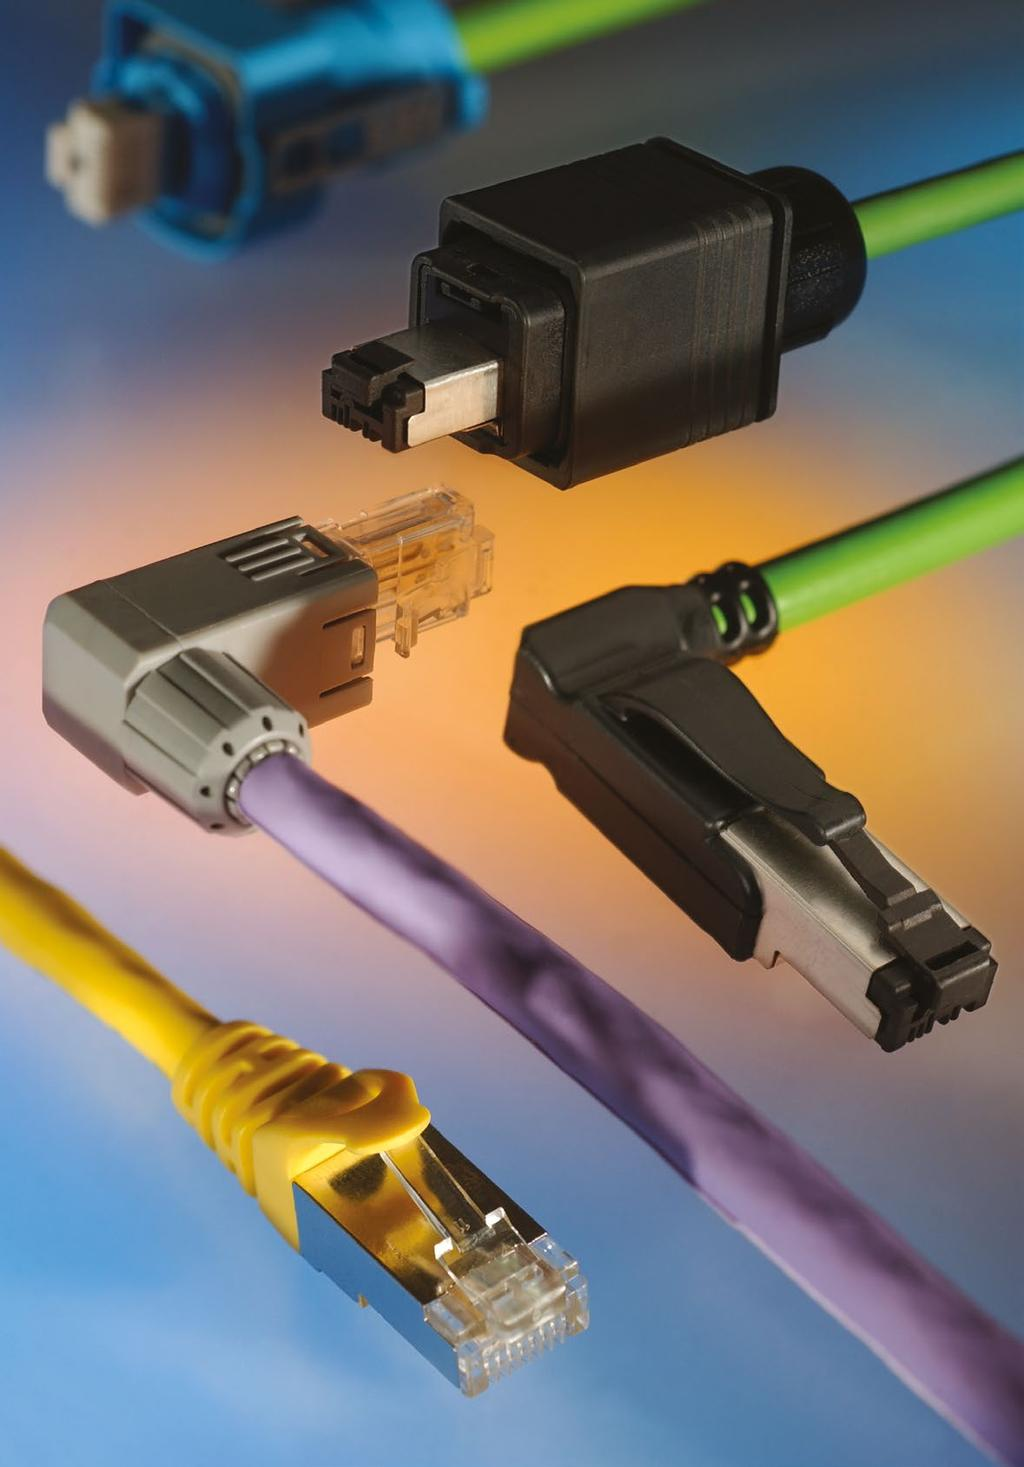 Industrial Ethernet Cables Connectors Copper Fibre Optic The Circuit Board Rj45 Network Cable Connector Waterproof Pre Assembled Profinet Cc Link Ie Side